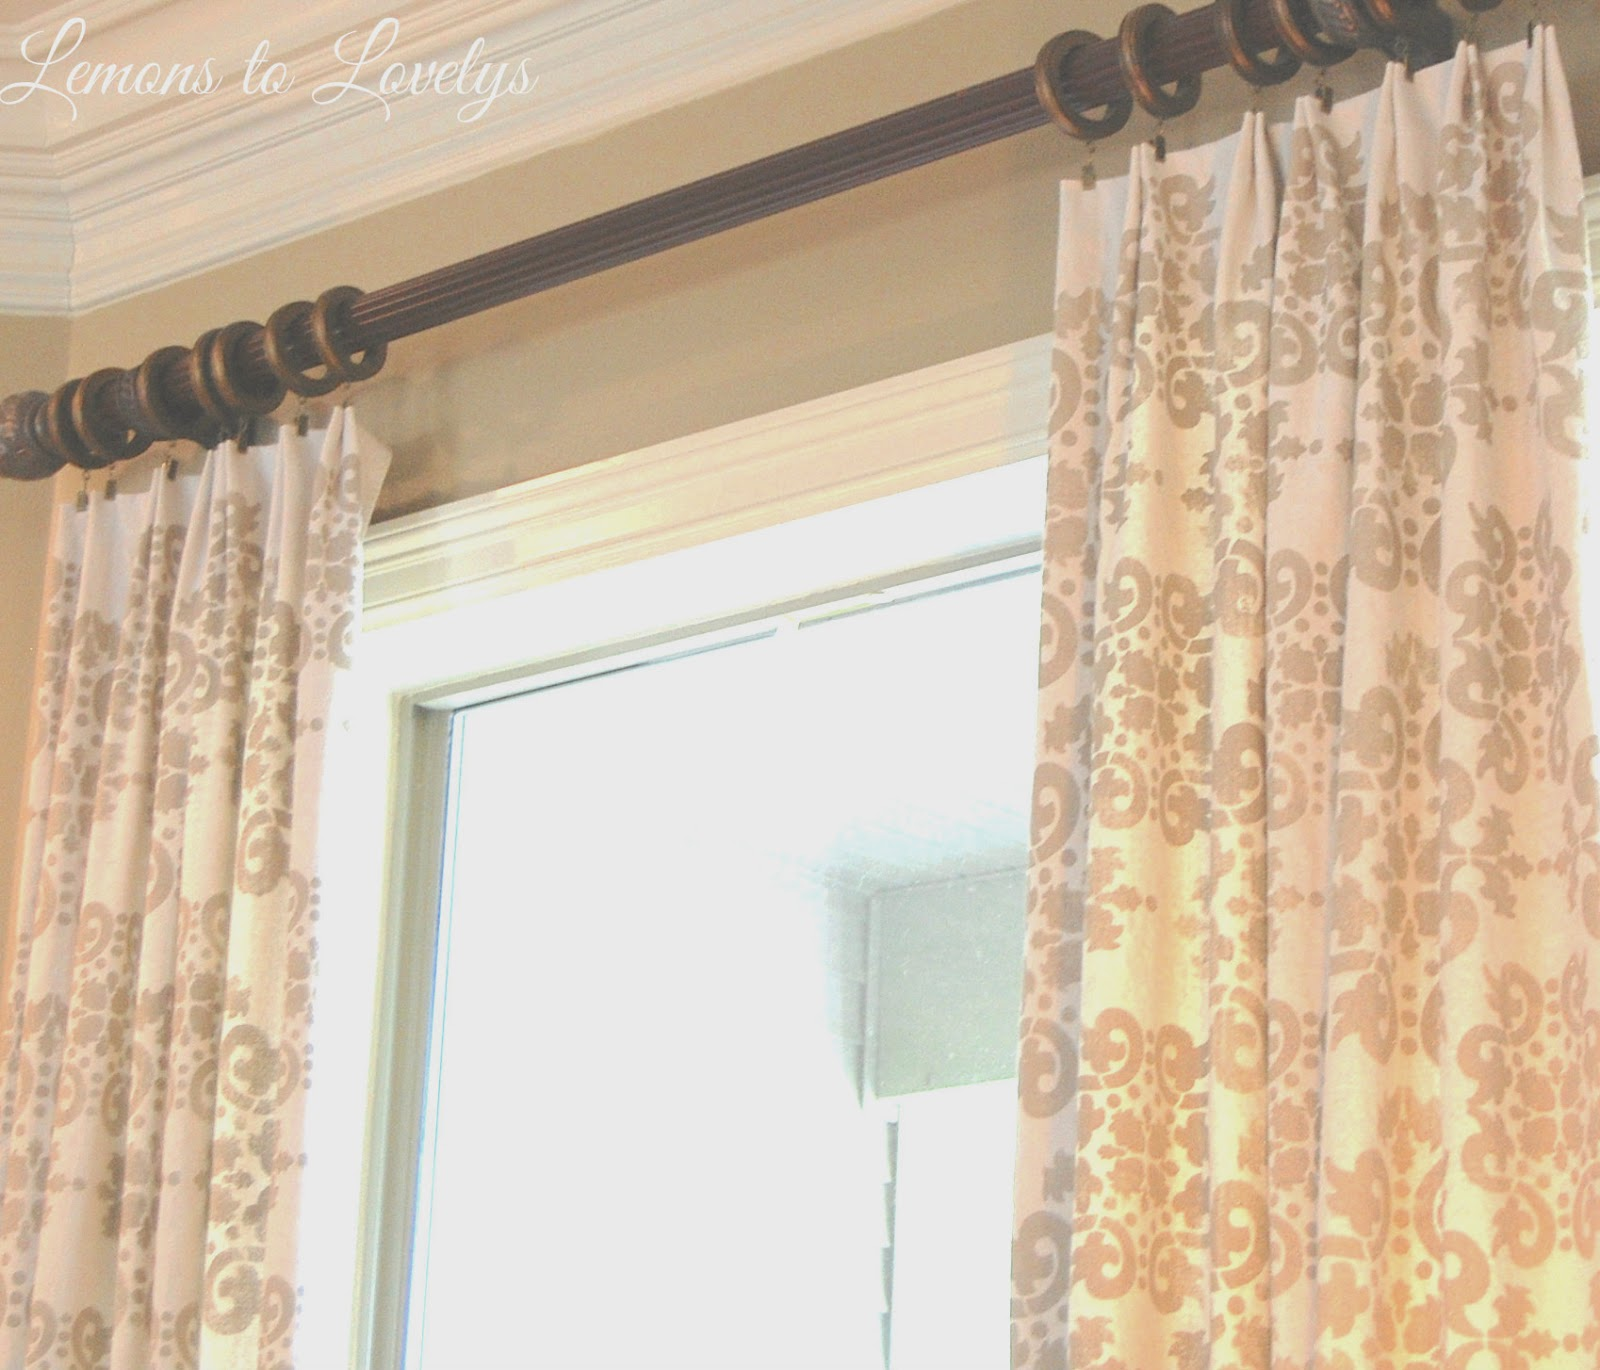 Easy No Sew Drop Cloth Curtains WITH PLEATS! – Lemons to Lovelys